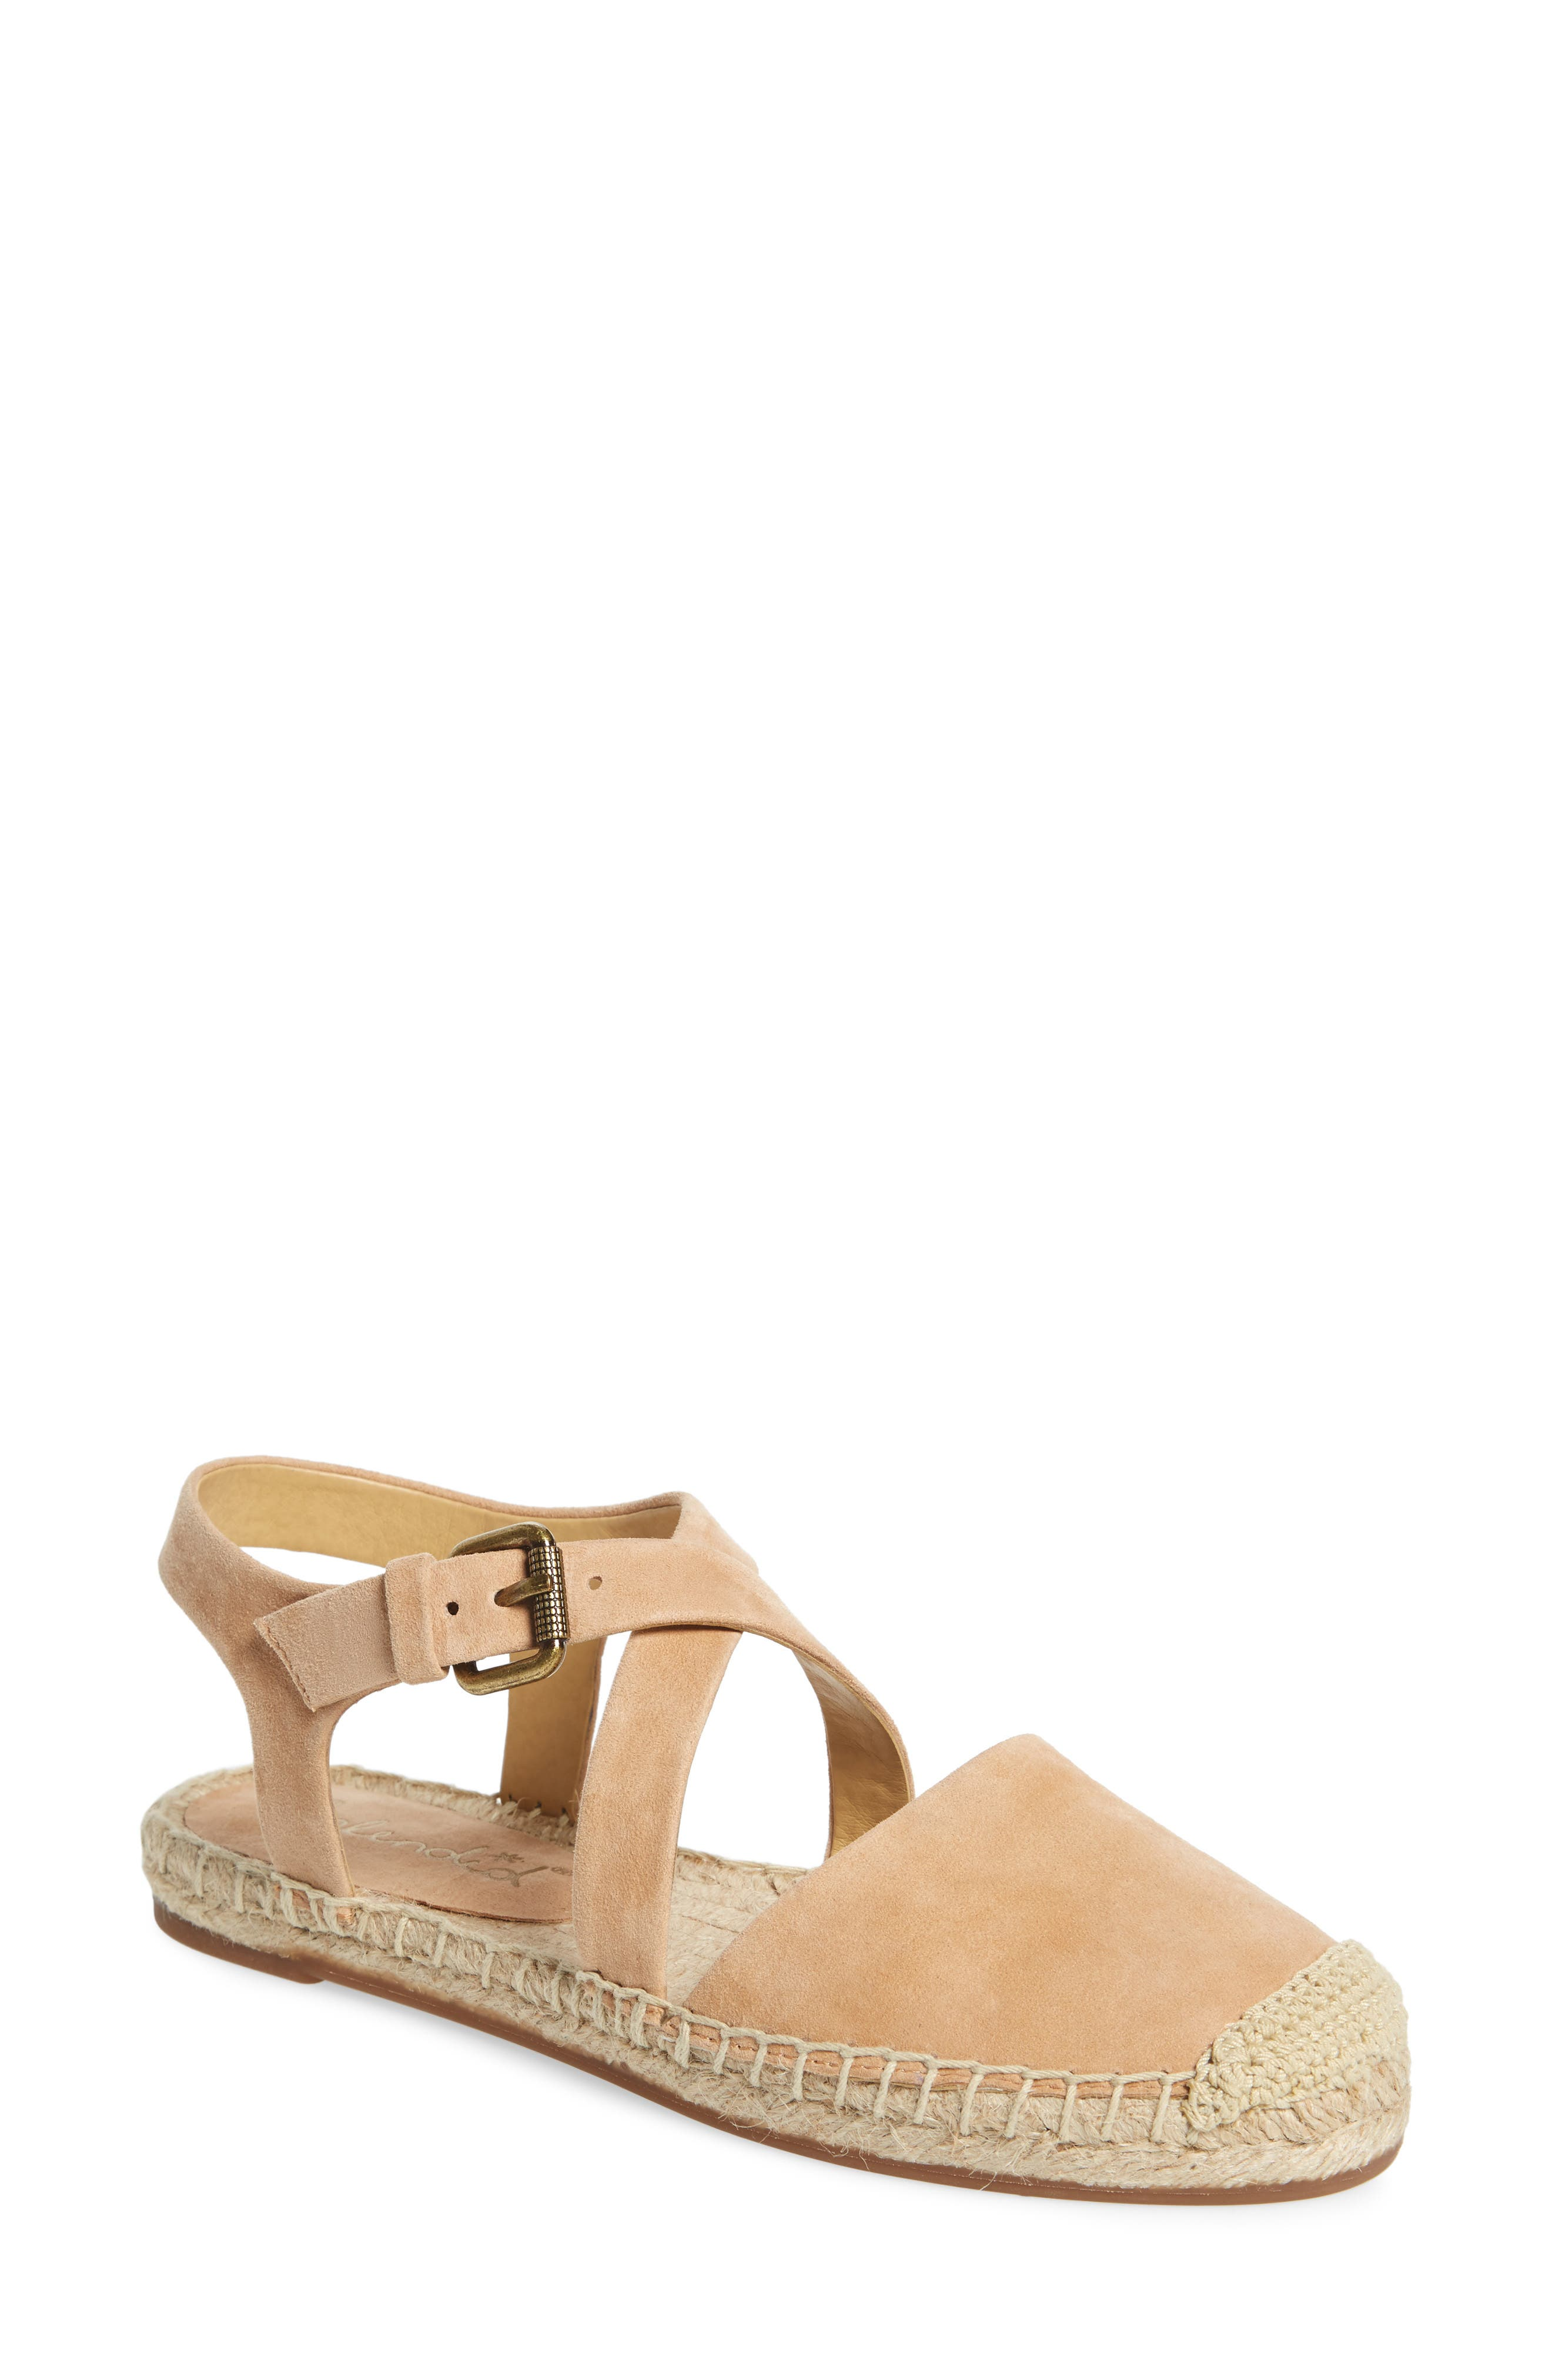 Foley Espadrille Flat,                         Main,                         color, Nude Suede